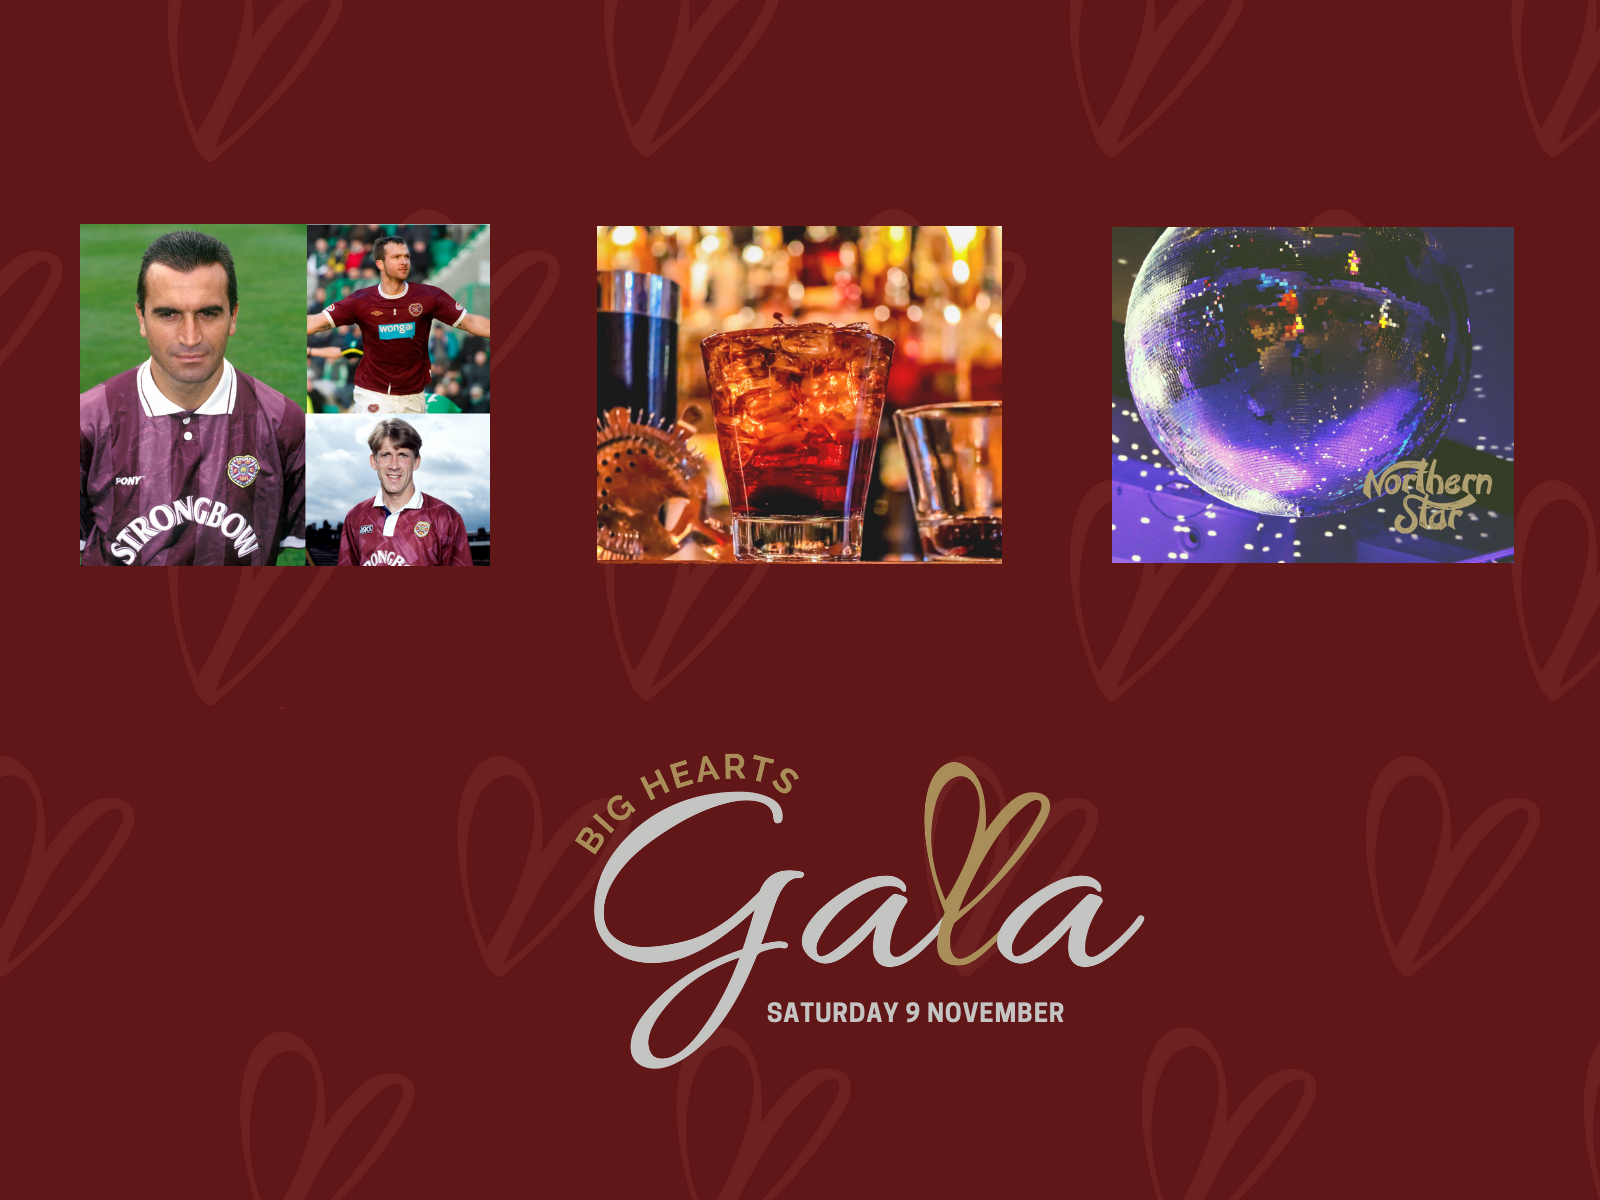 » Big Hearts Gala: Event details for Supporters